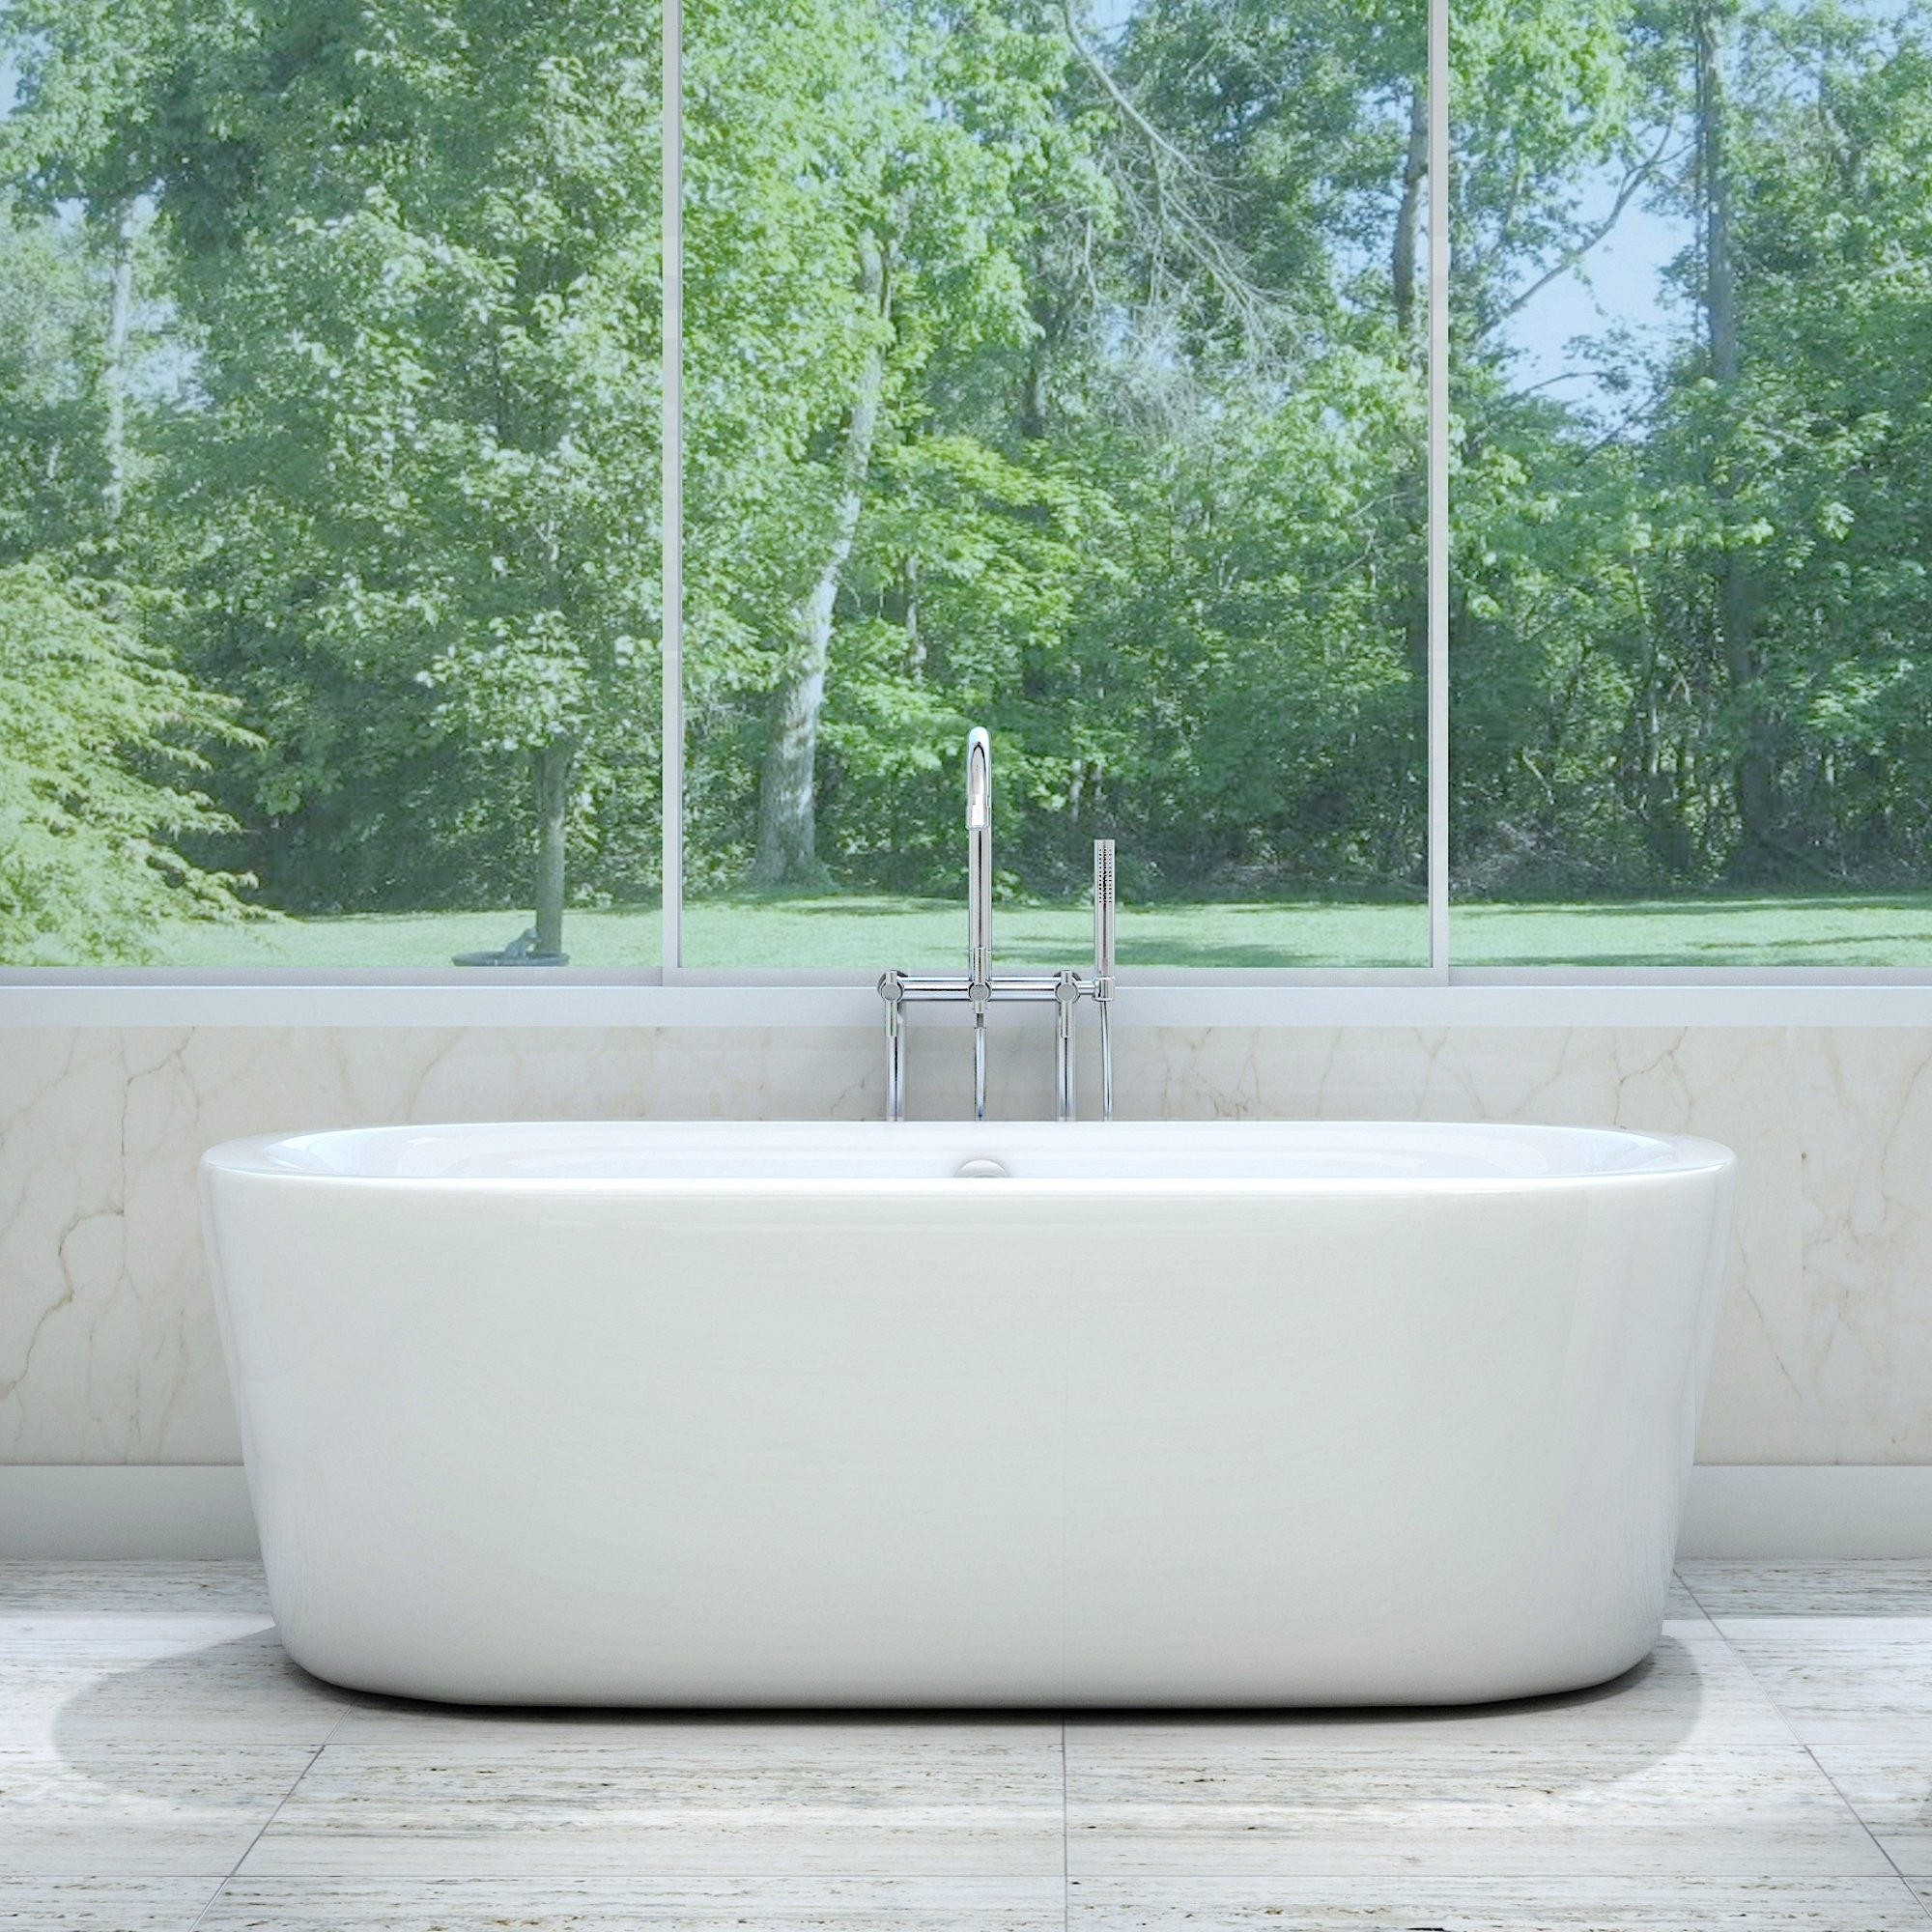 Luxury 67 inch Freestanding Tub with Modern Tub Design in White, Includes Full Apron and Polished Chrome Drain, from The Newcastle Collection